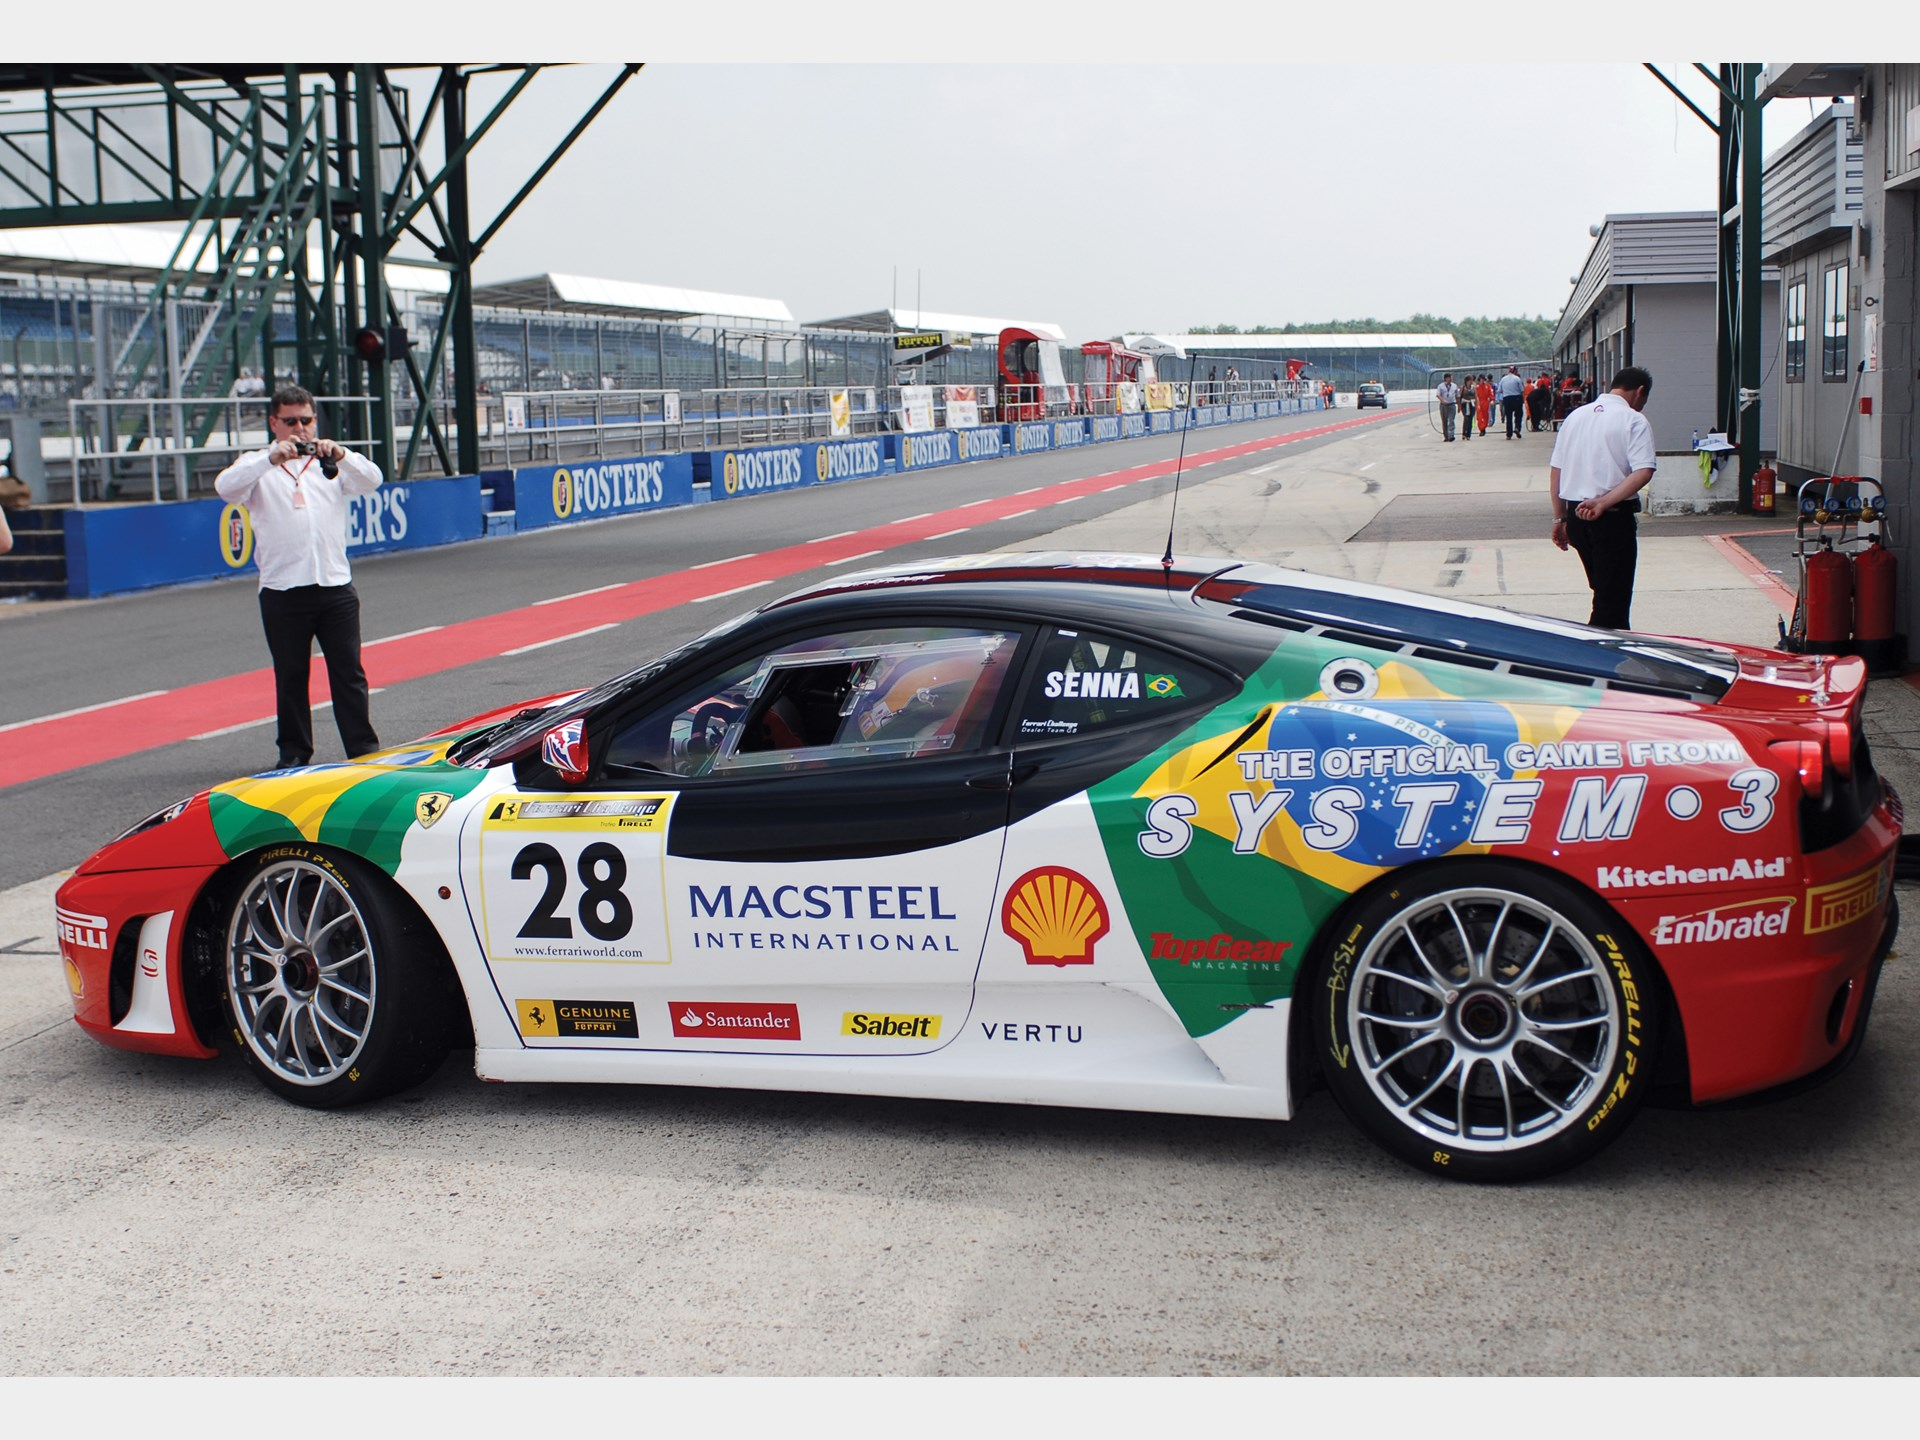 Bruno Senna at the wheel of the F430 Challenge at Silverstone in June 2007.